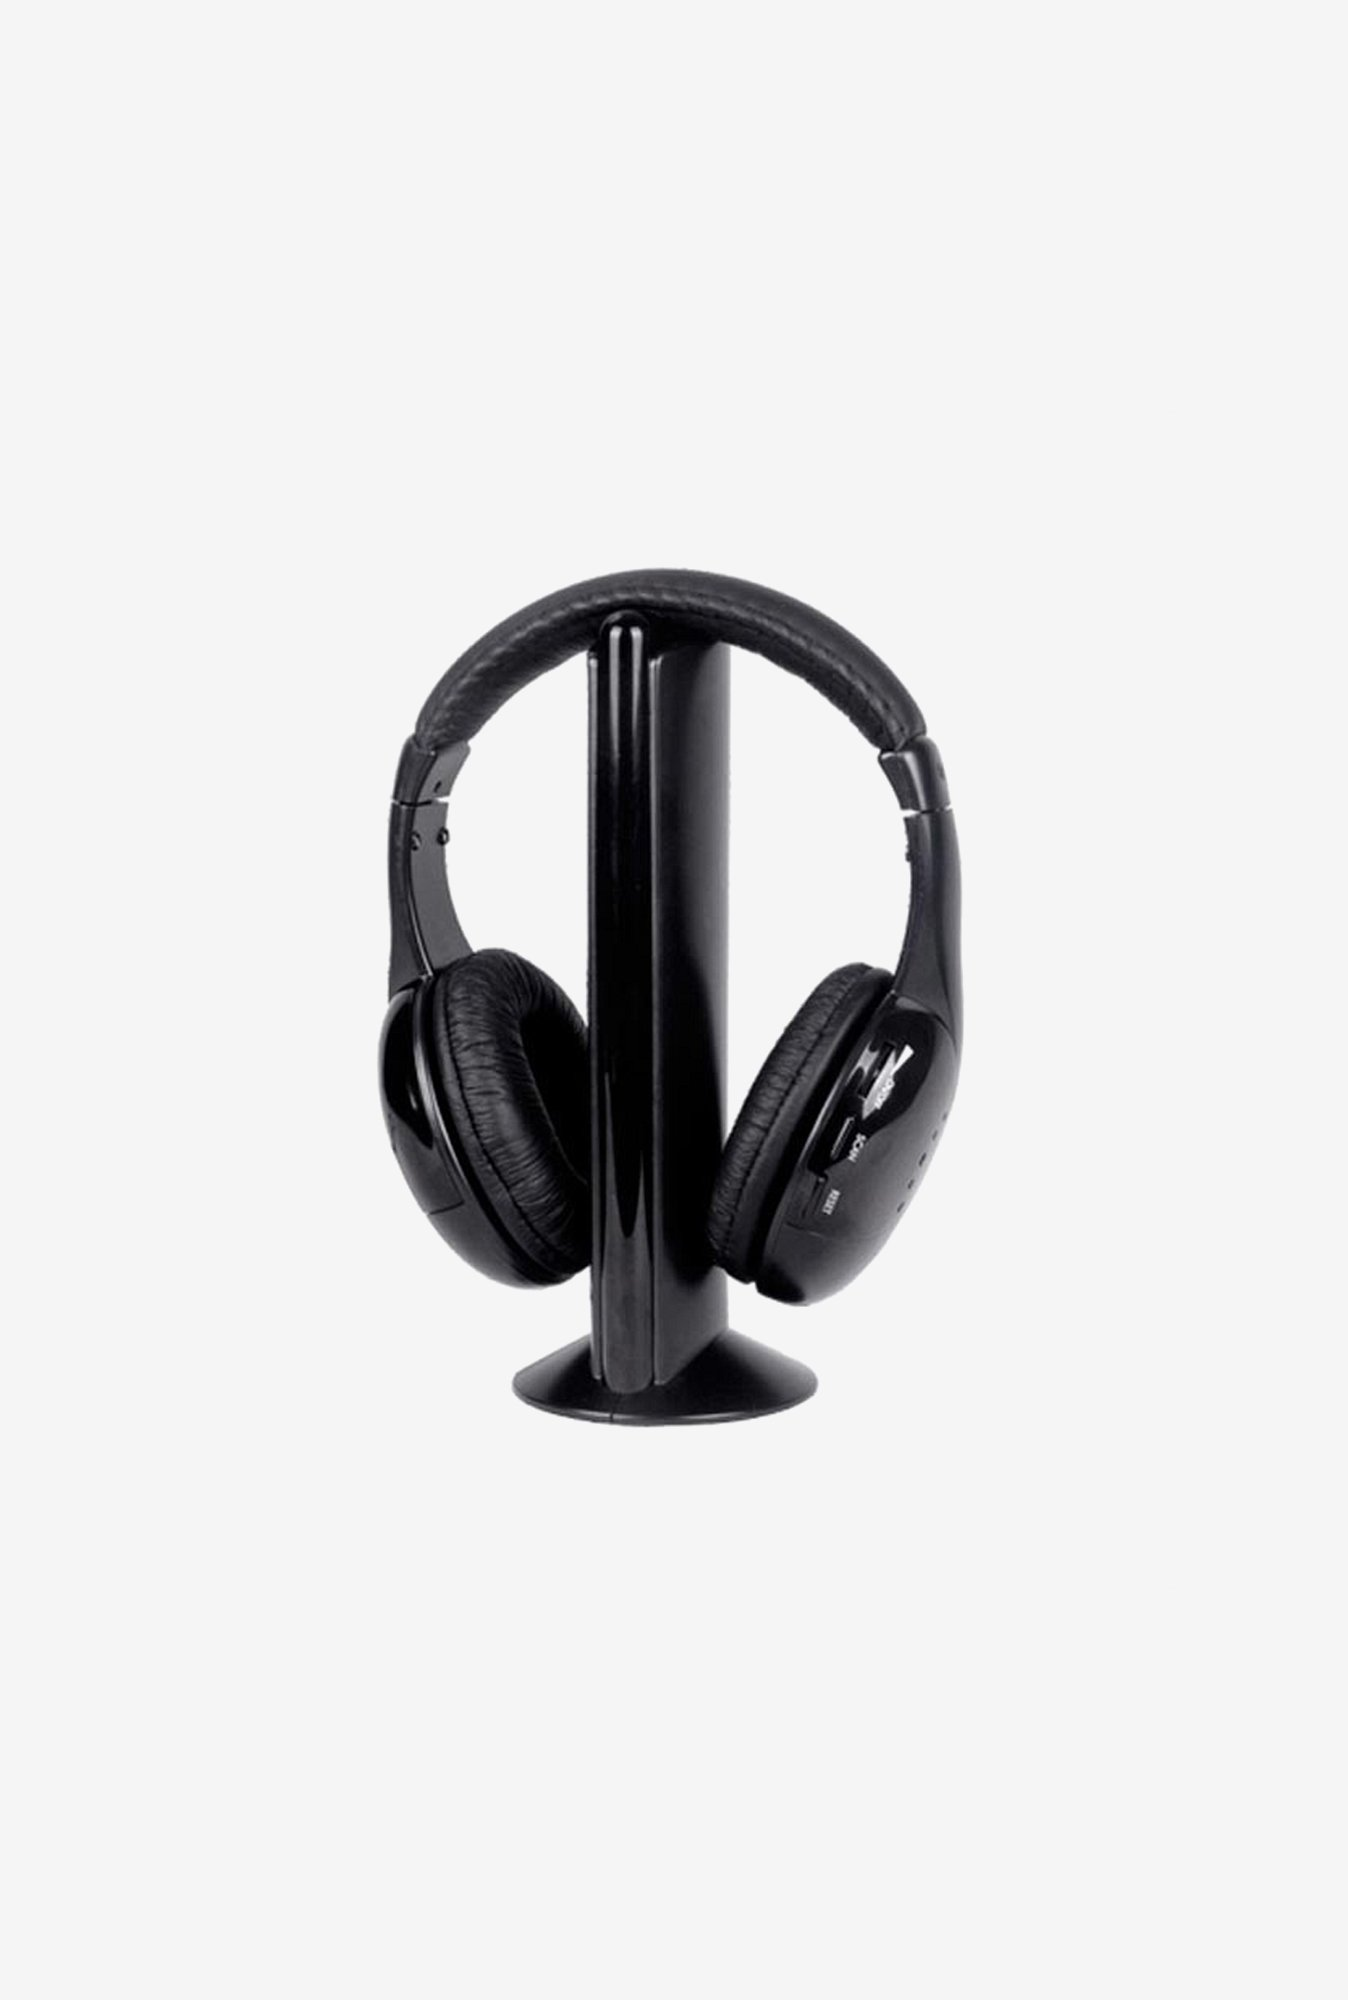 Intex Wireless Roaming Over Ear Headphone Black